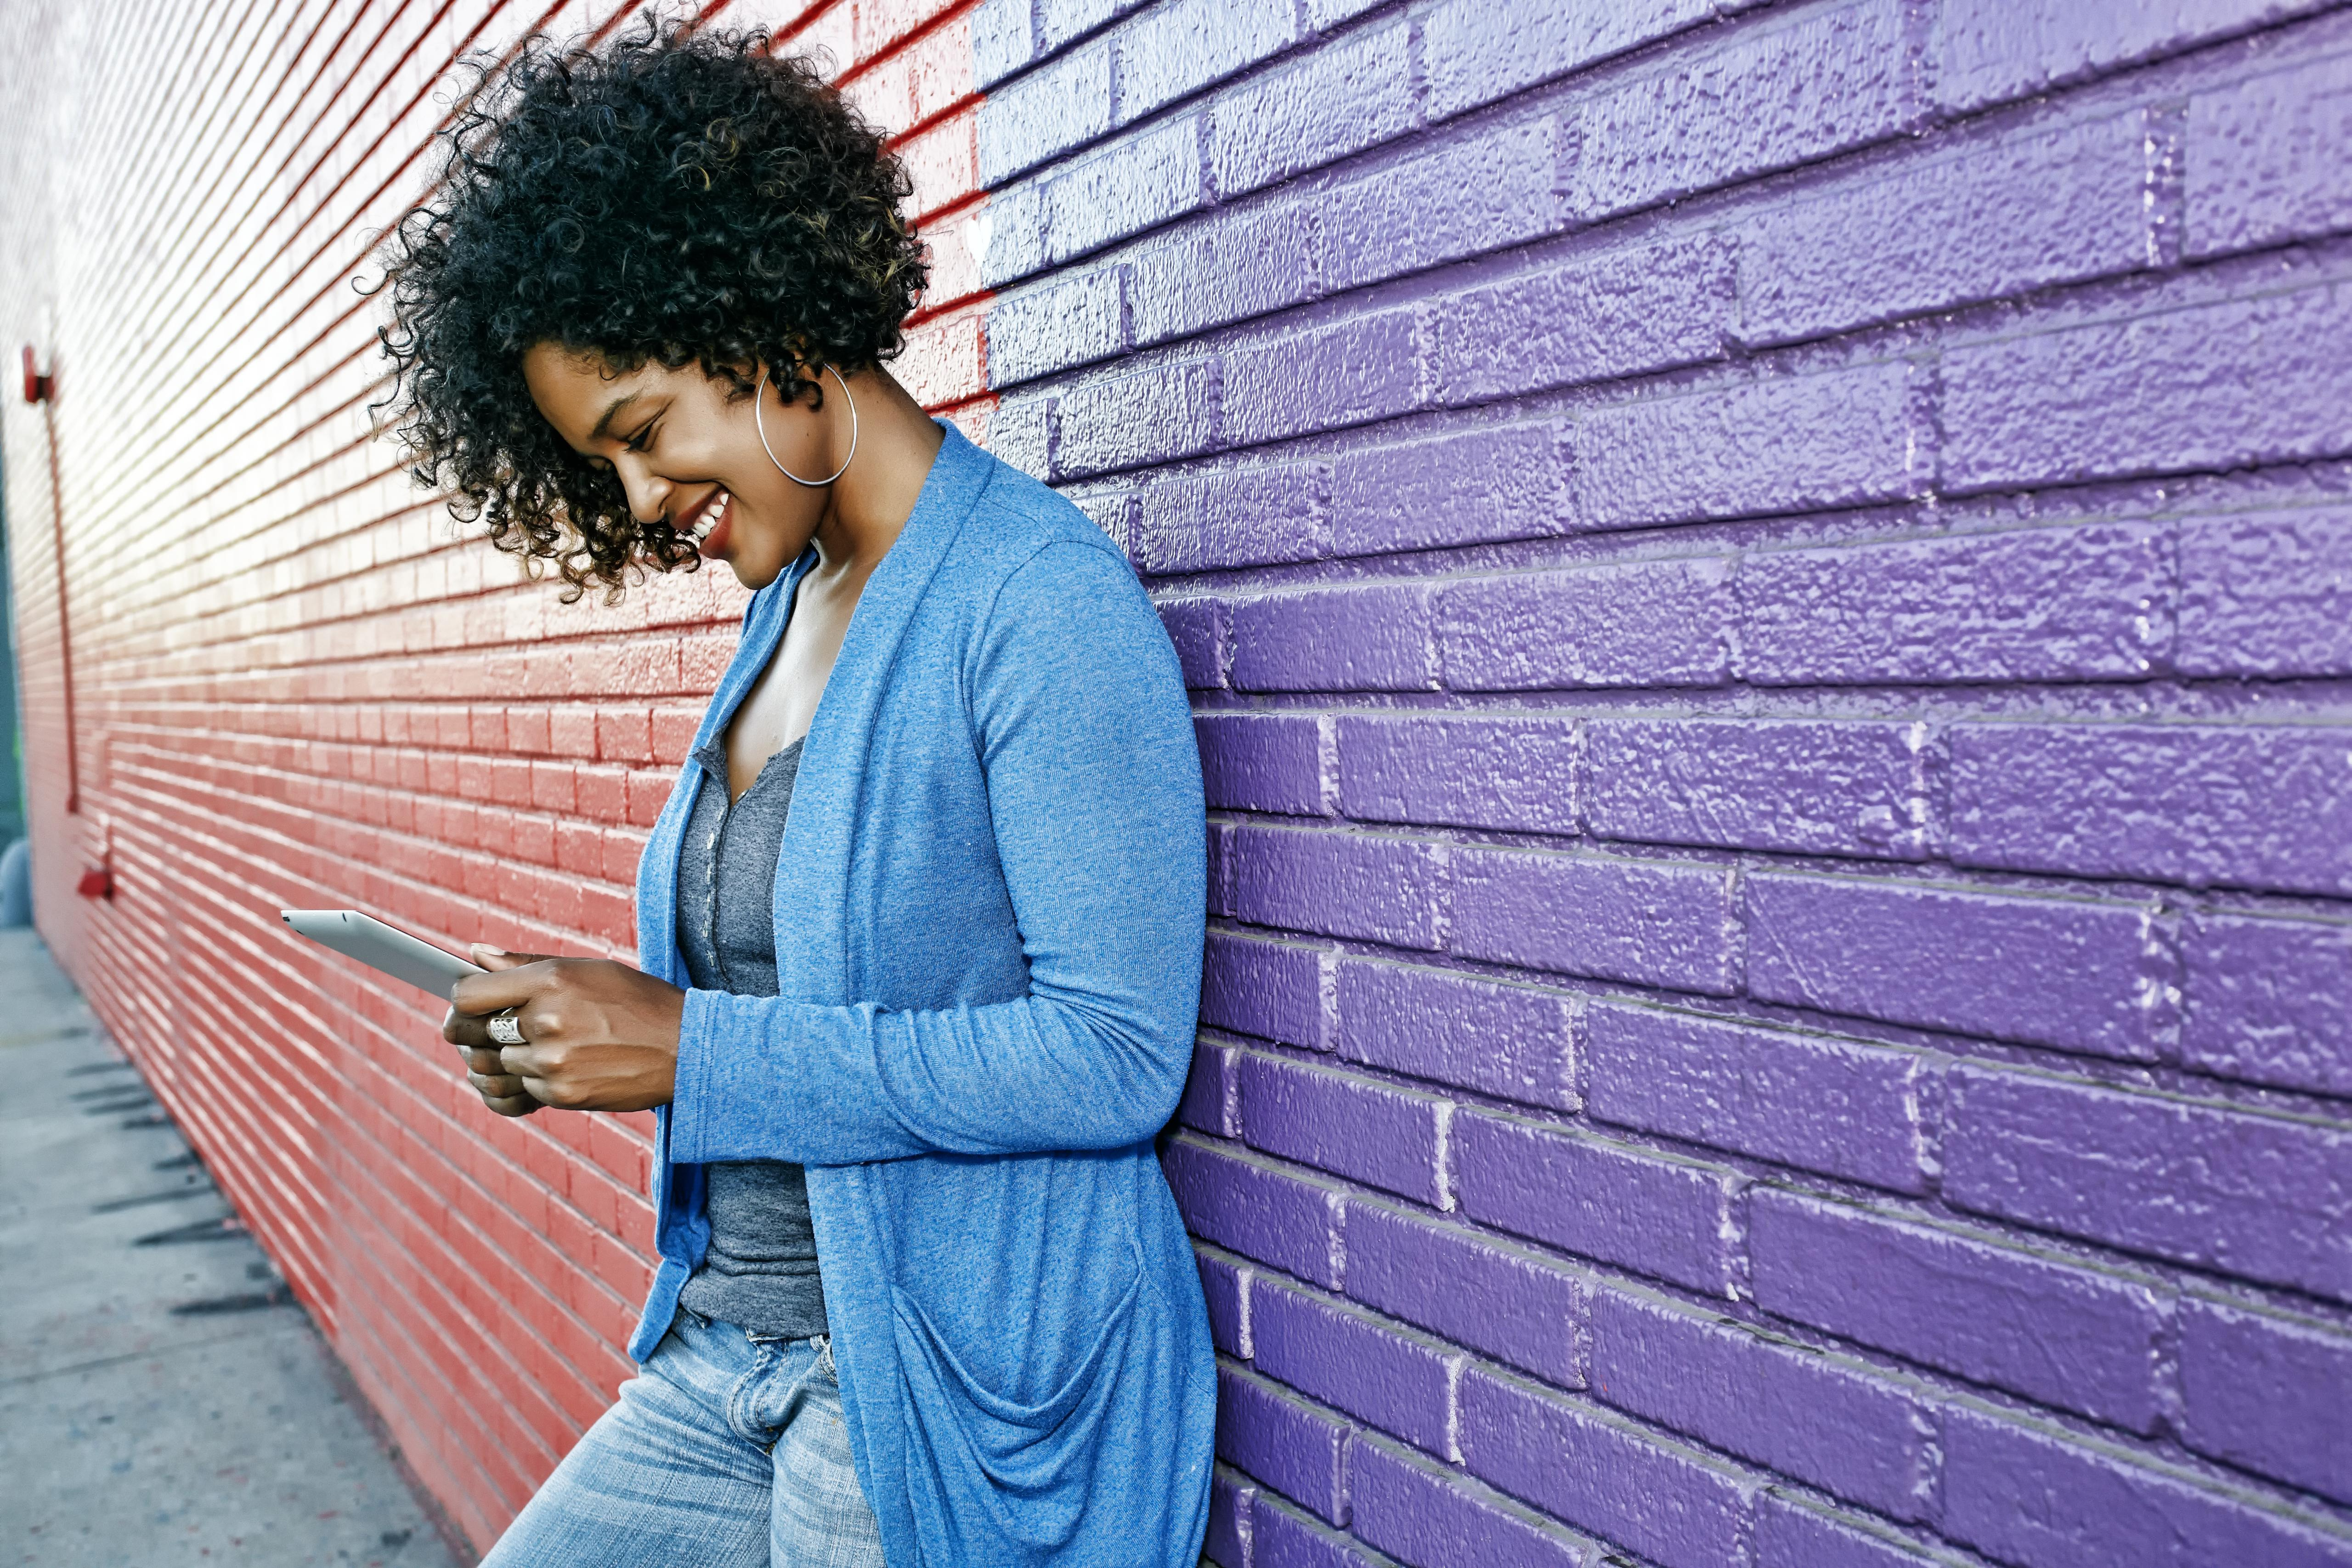 Mixed race woman with cell phone standing by colorful wall